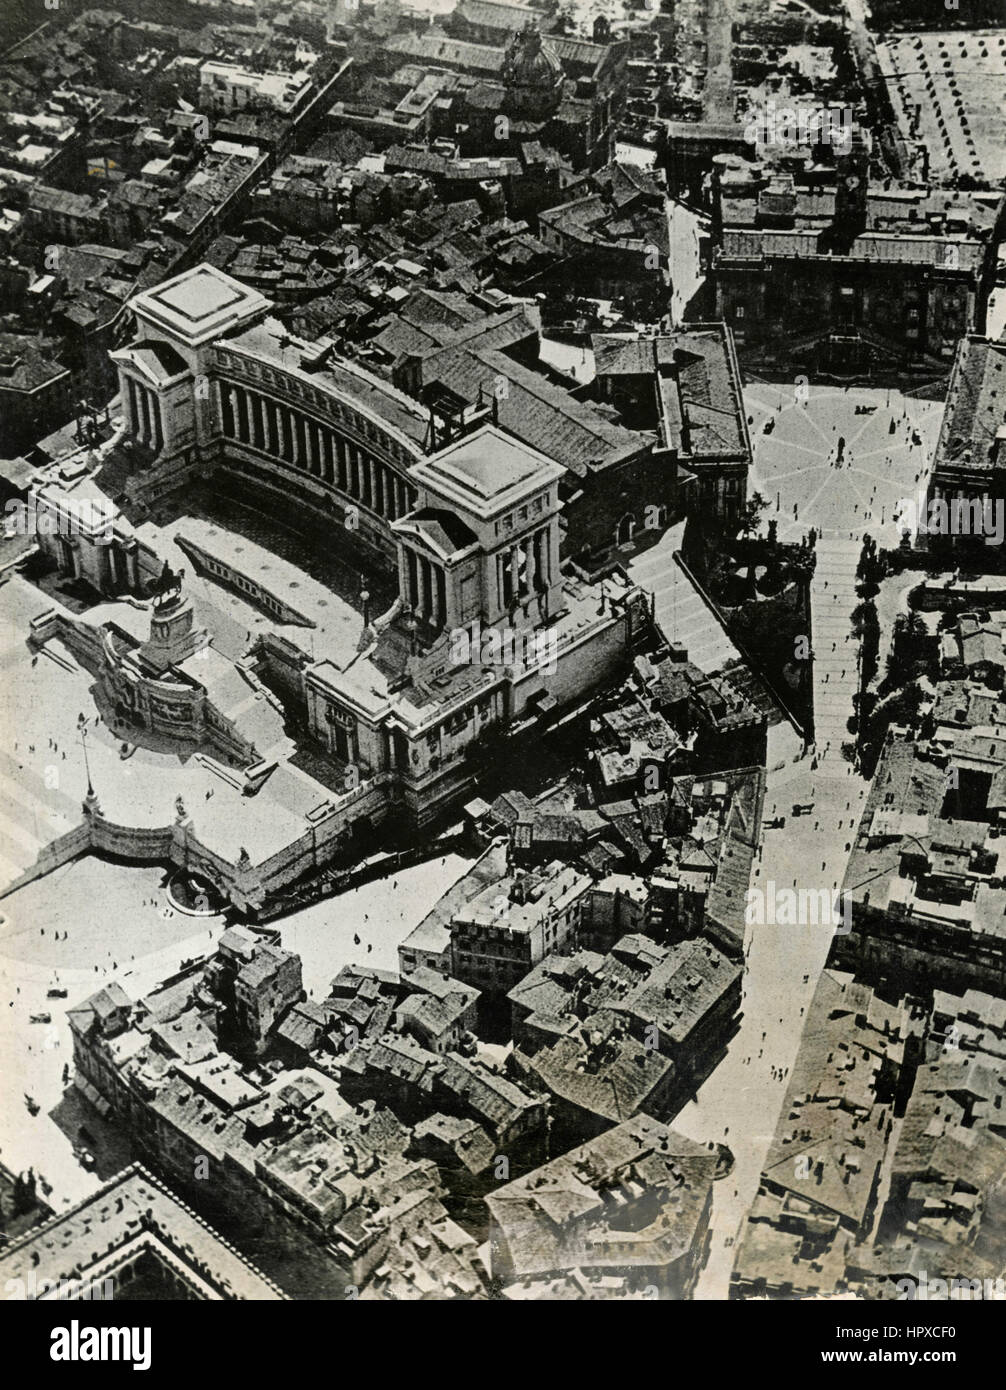 Aereal view of Rome, Italy before 1931 - Stock Image